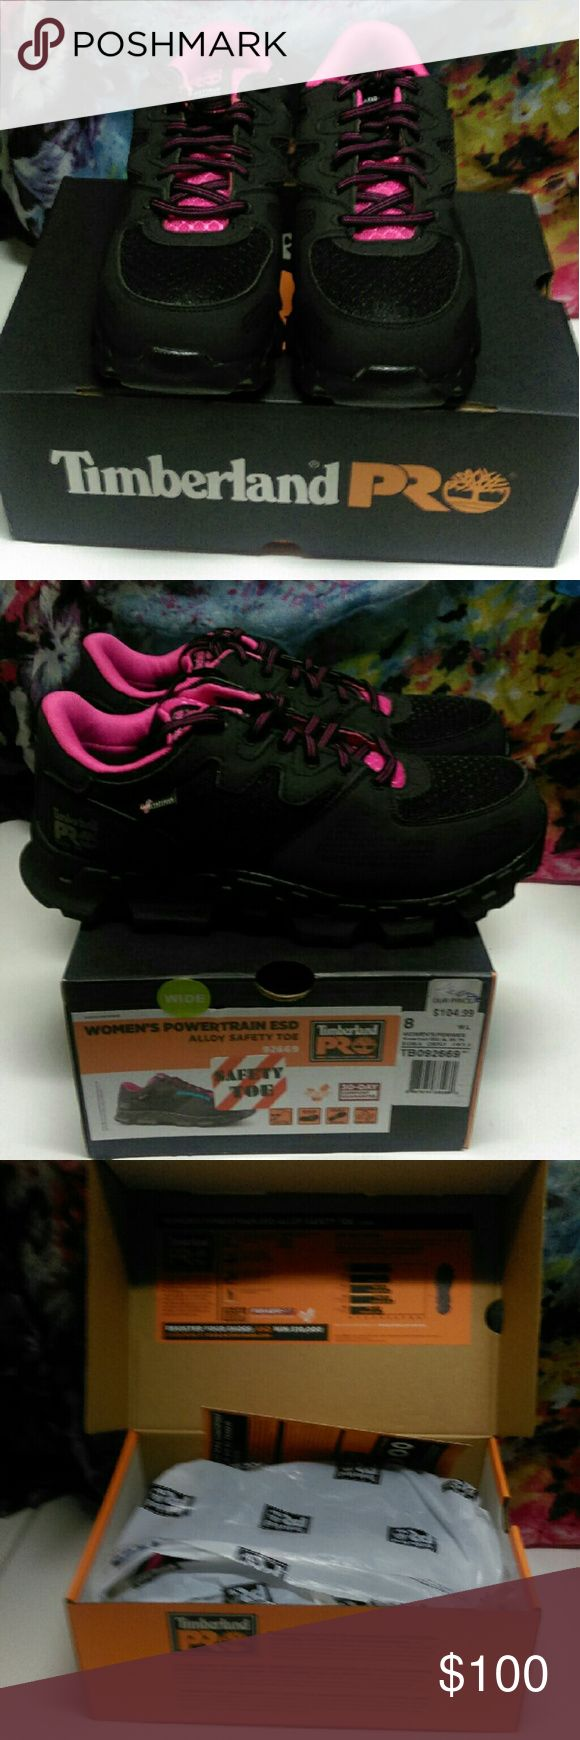 Timberland Pro Powertrain ESD W/ Alloy Safety Toe NWT and box. See photos. Timberlake Pro Powertrain ESD Safety Shoes w/ anti fatigue technology and Alloy Safety Toe. Slip, oil, and abrasion resistant. Antimicrobial for odor control. Black and pink. Size 8w. Timberland Shoes